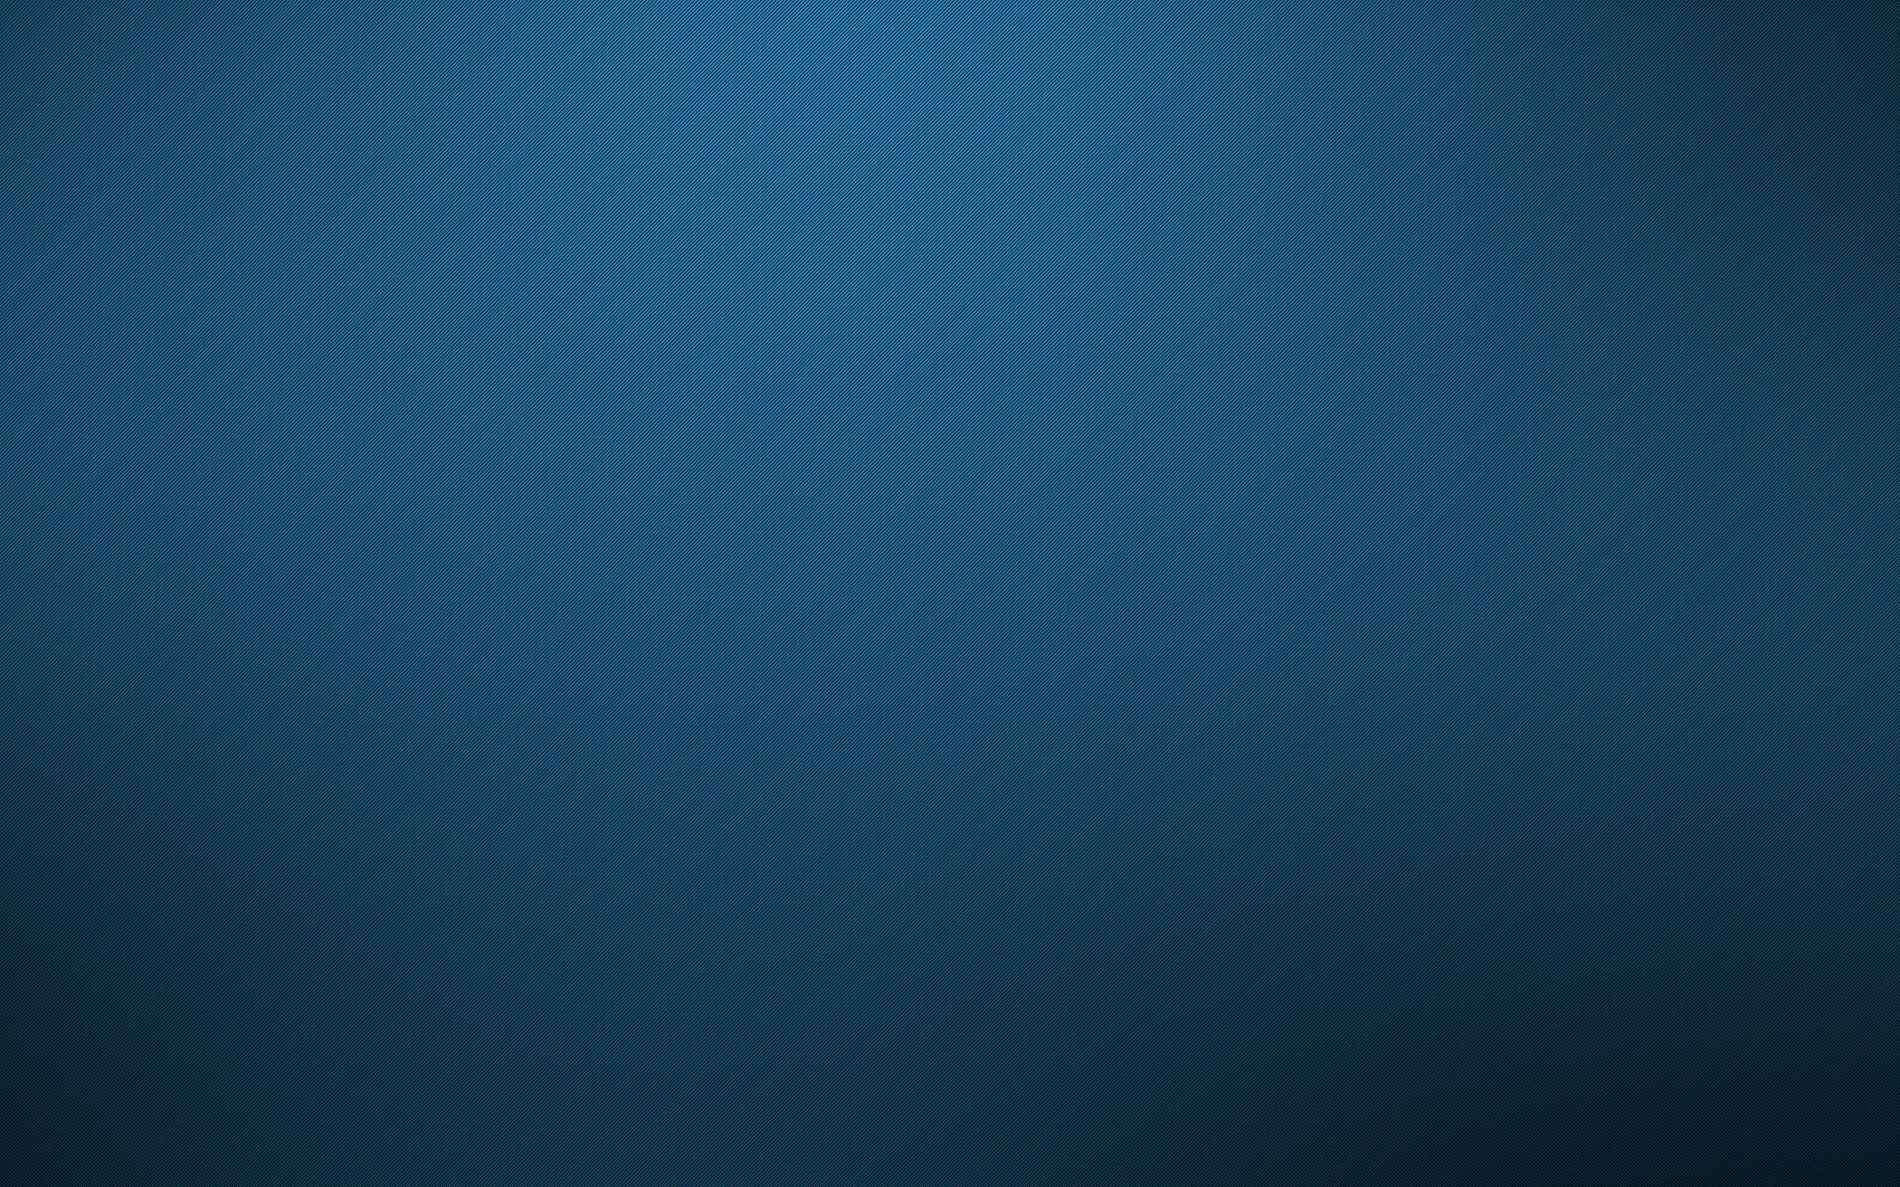 Blue Wallpaper 057